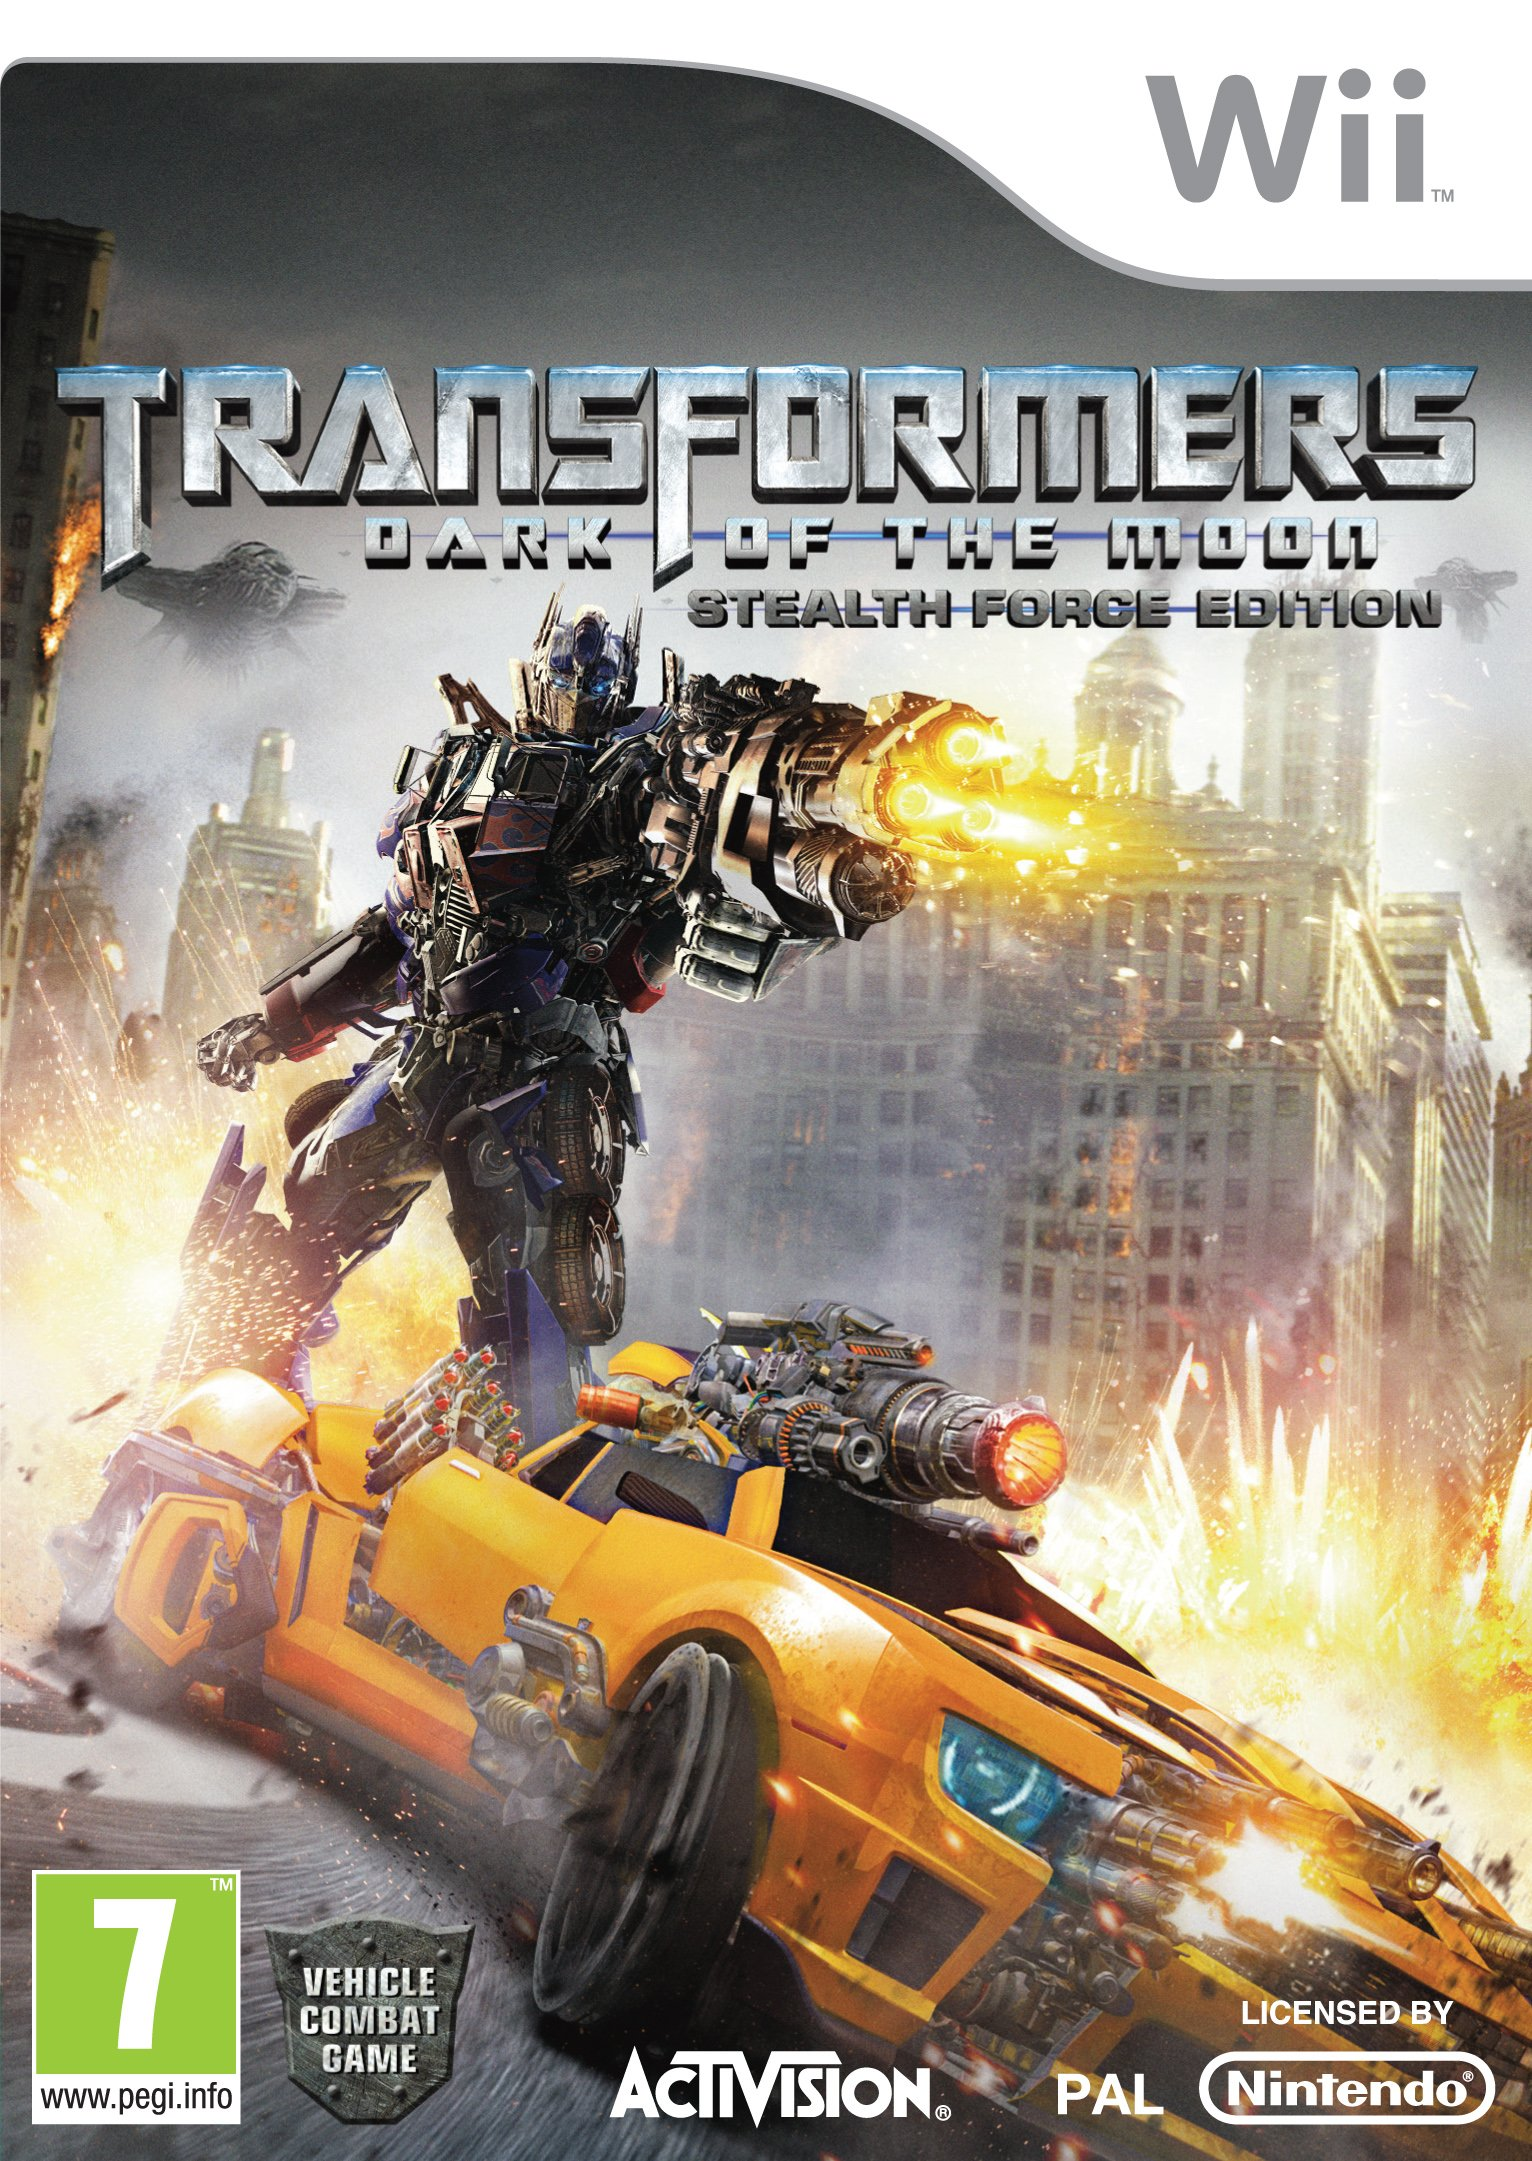 Activision Transformers: Dark Of The Moon - Stealth Force Edition - Bundle (Wii)